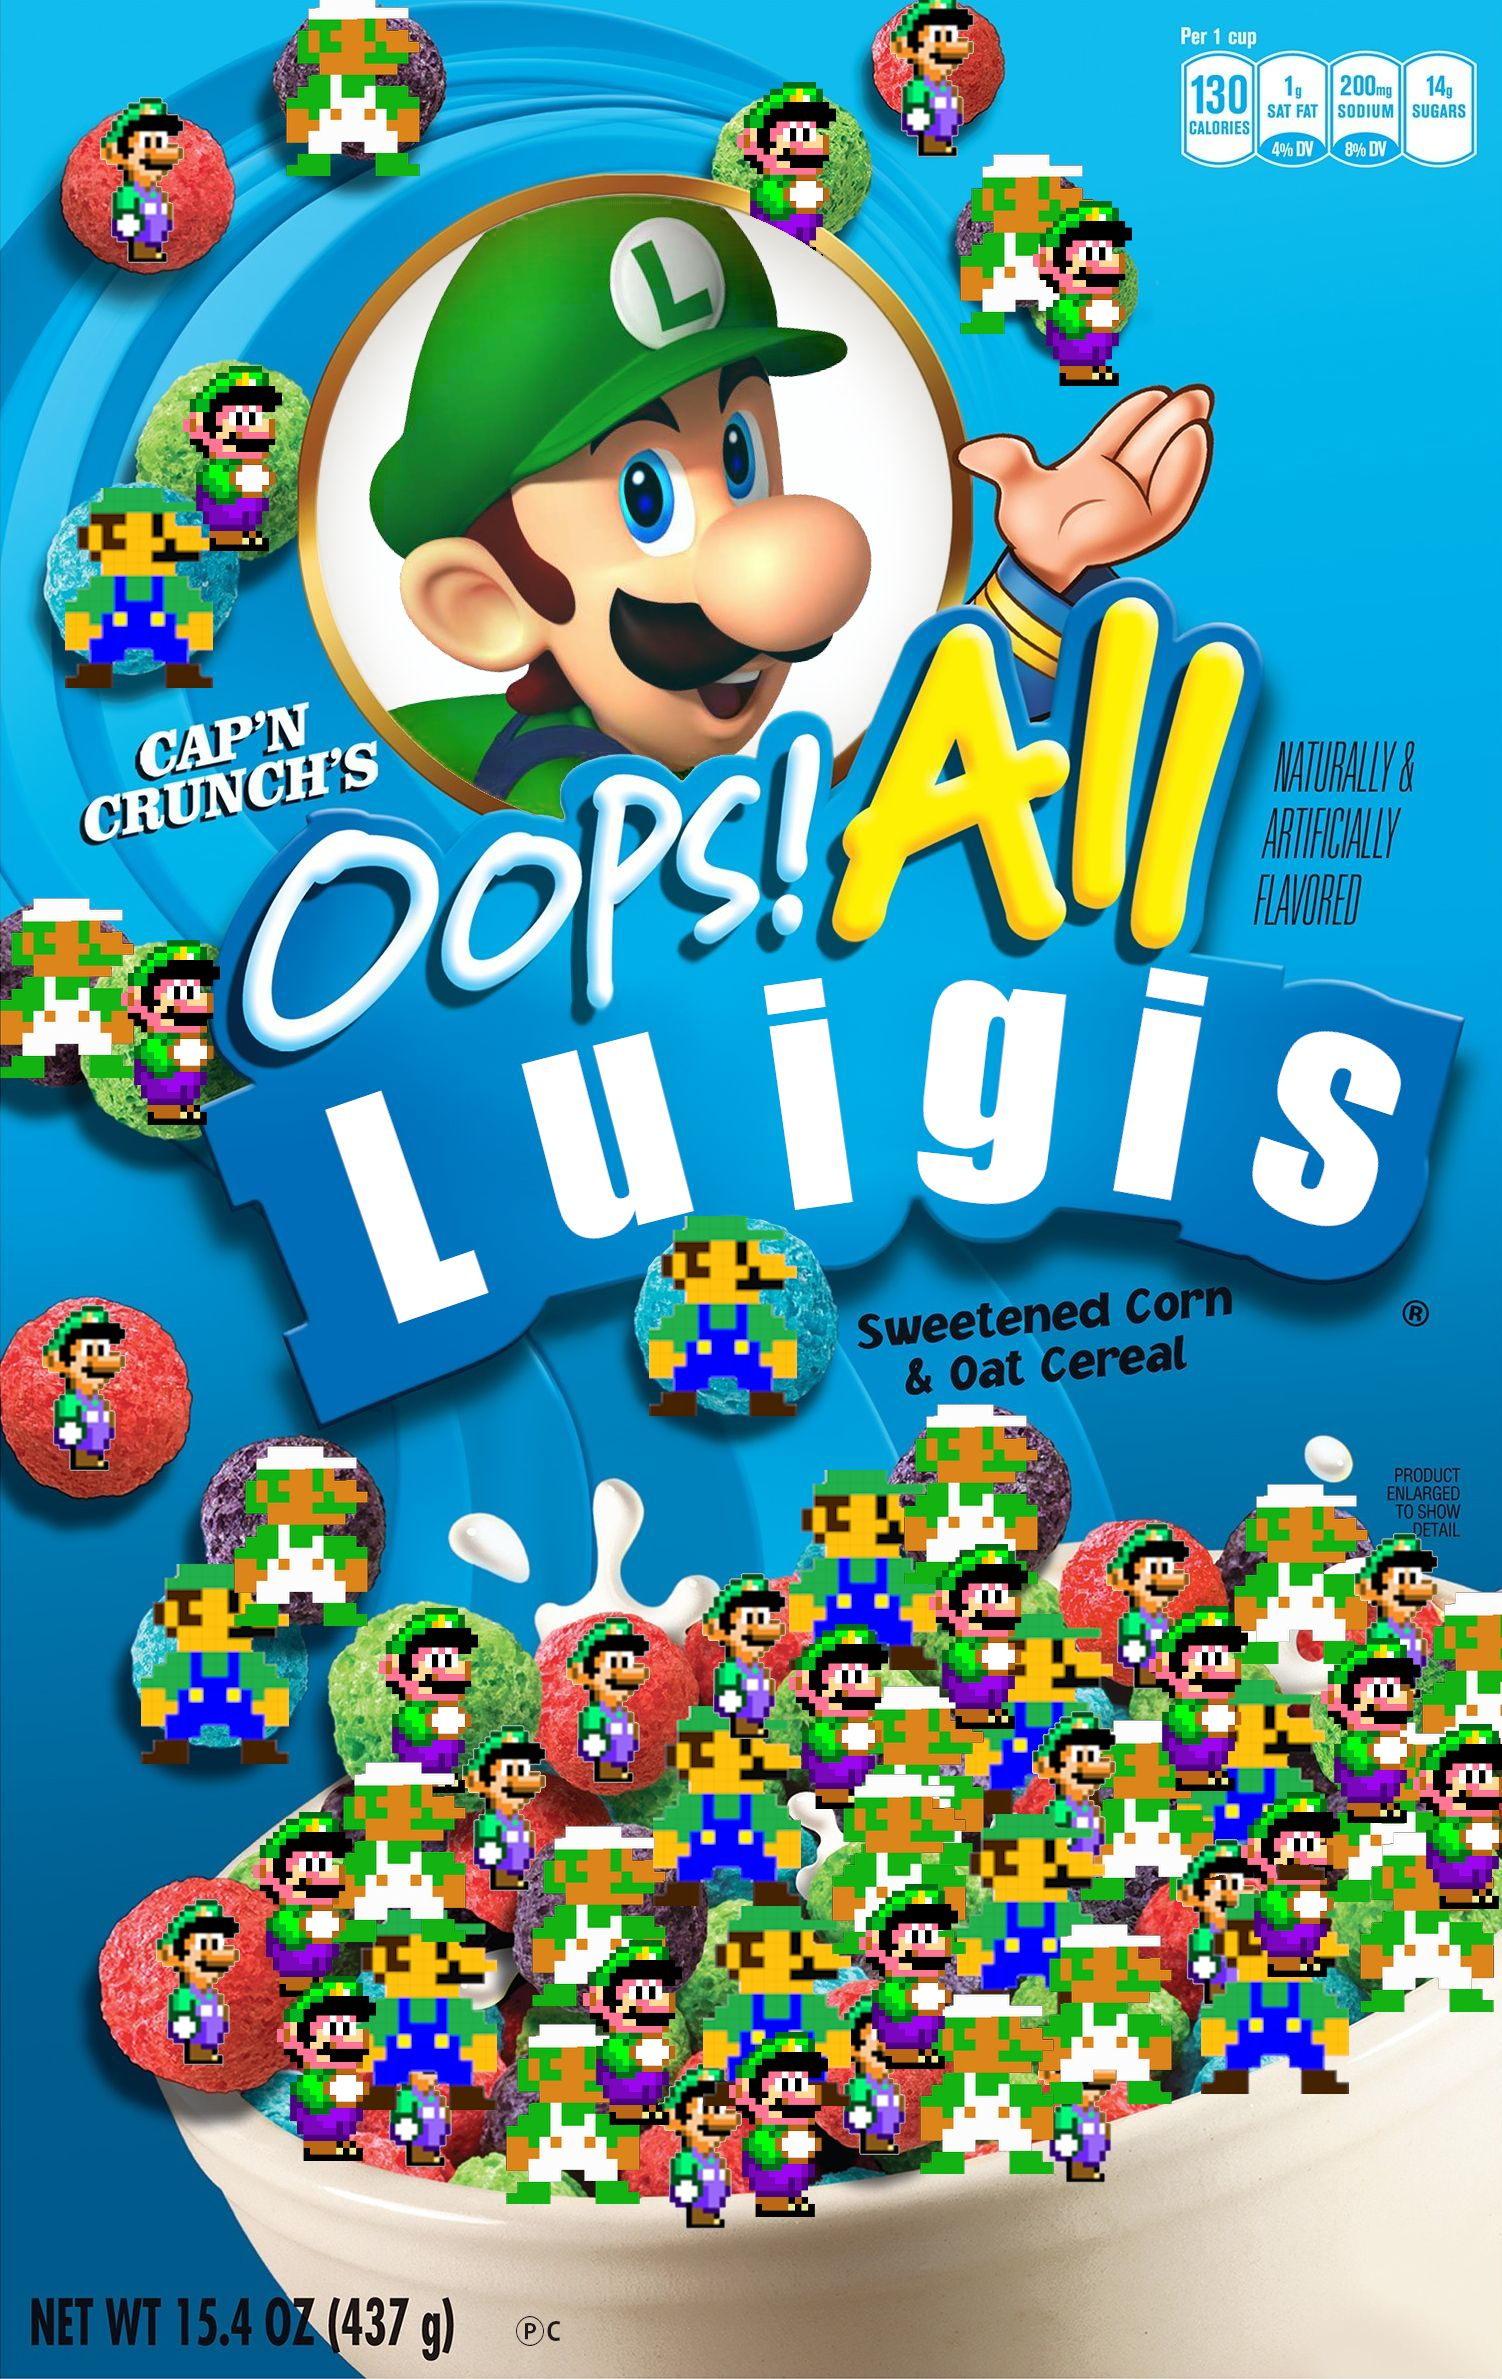 Oops All Luigis Oops All Berries Box Parodies Know Your Meme Etsy uses cookies and similar technologies to give you a better experience, enabling things like: luigis oops all berries box parodies